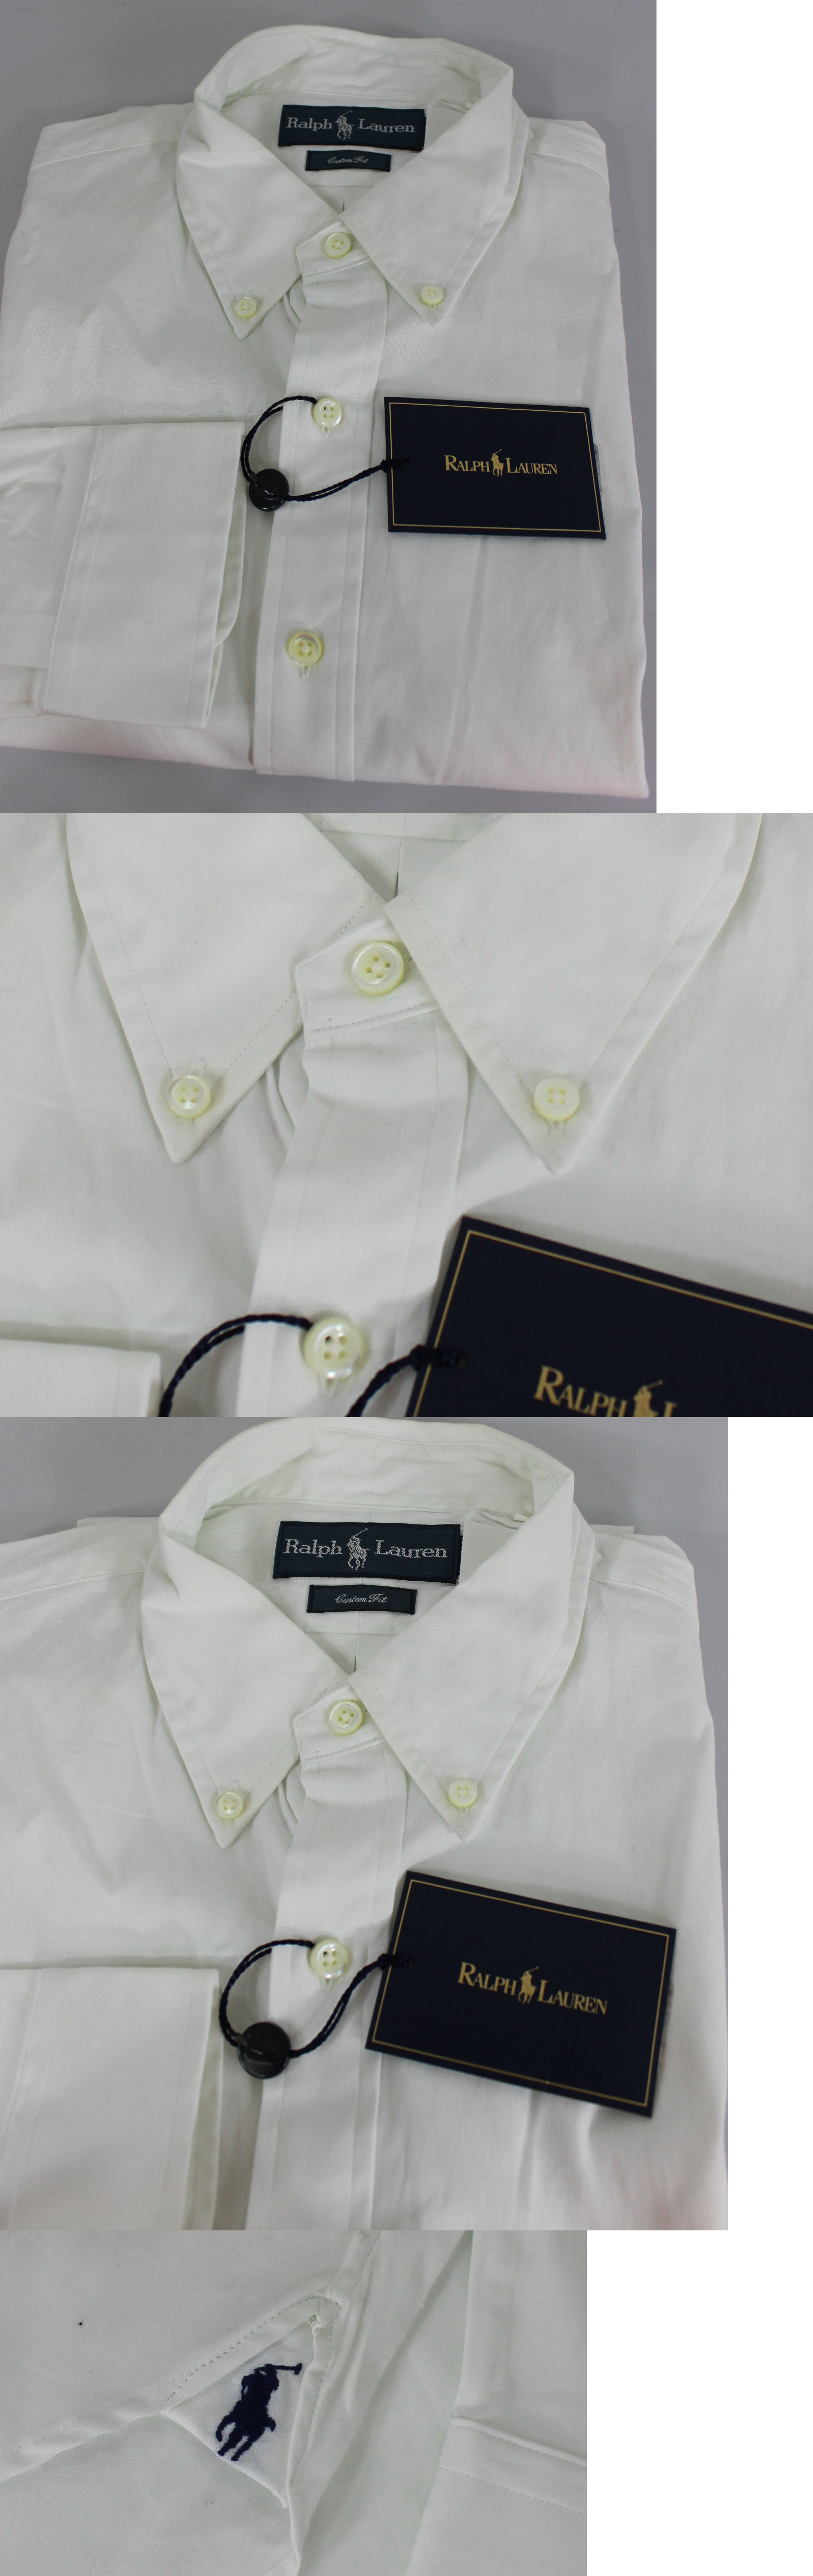 5745337f734 Ralph Lauren Shirt Ebay – EDGE Engineering and Consulting Limited